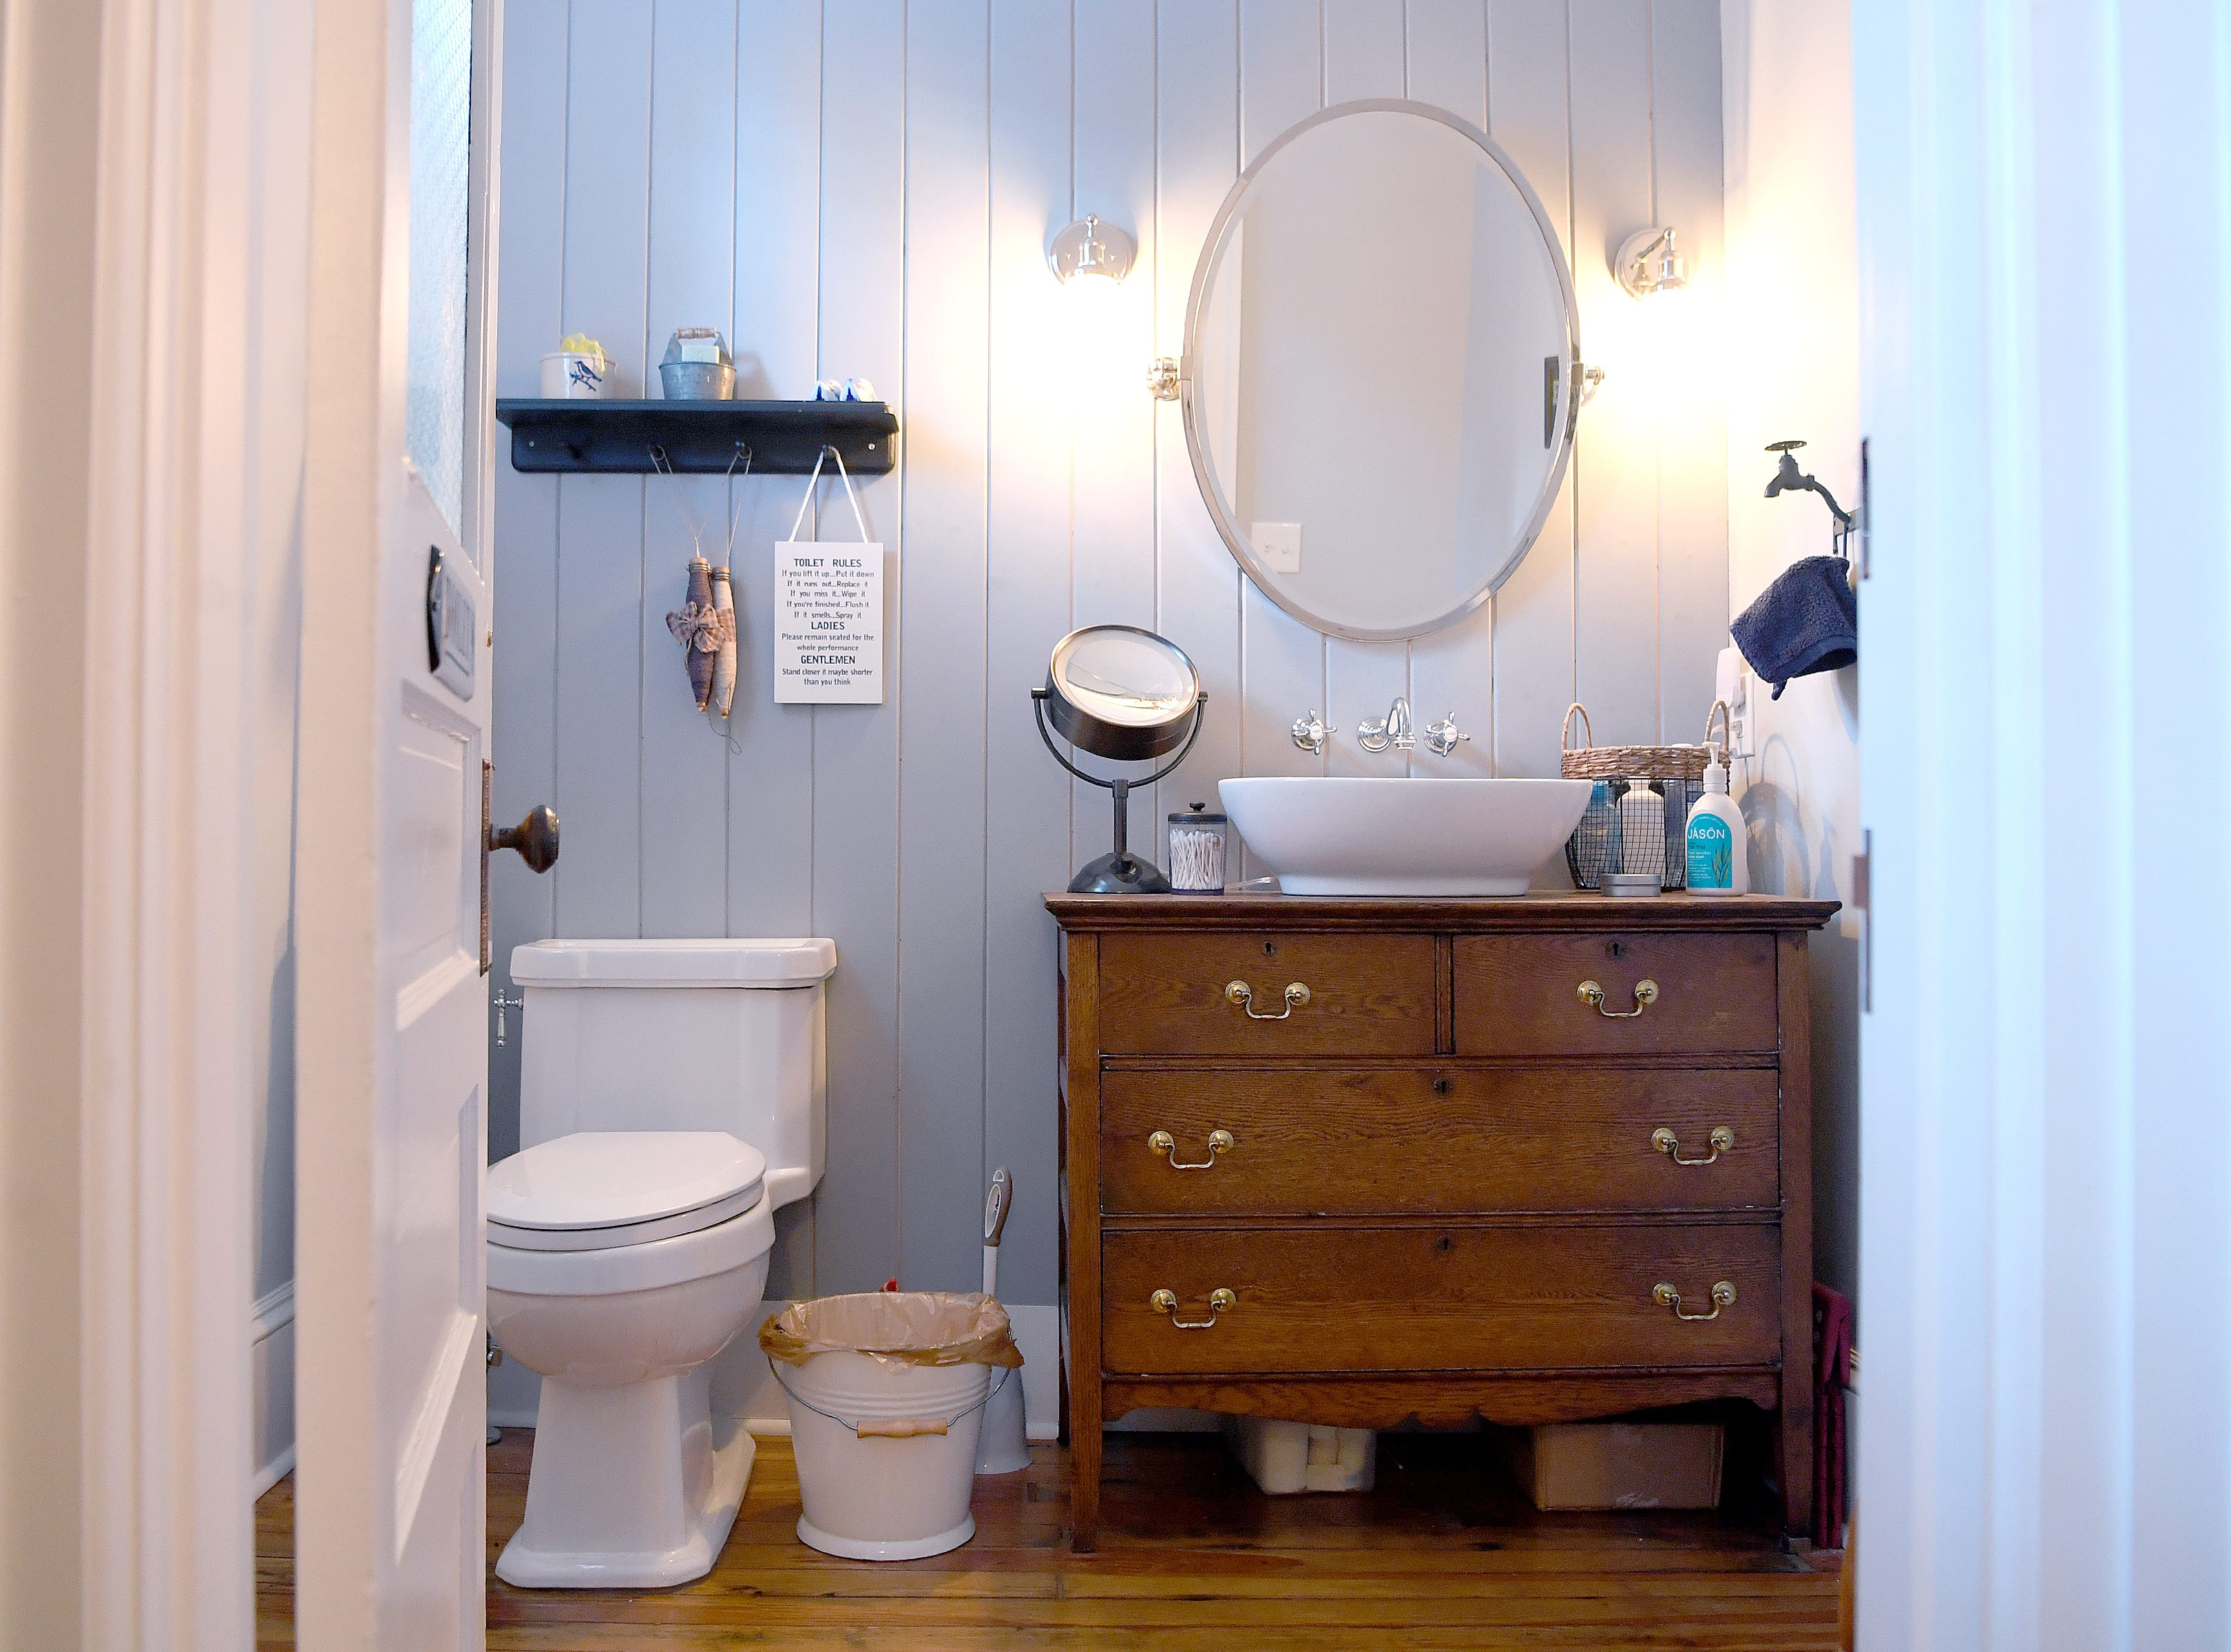 A dresser has been repurposed as a sink in the downstairs bathroom of Linda and Marc Voorhees' Montford home.